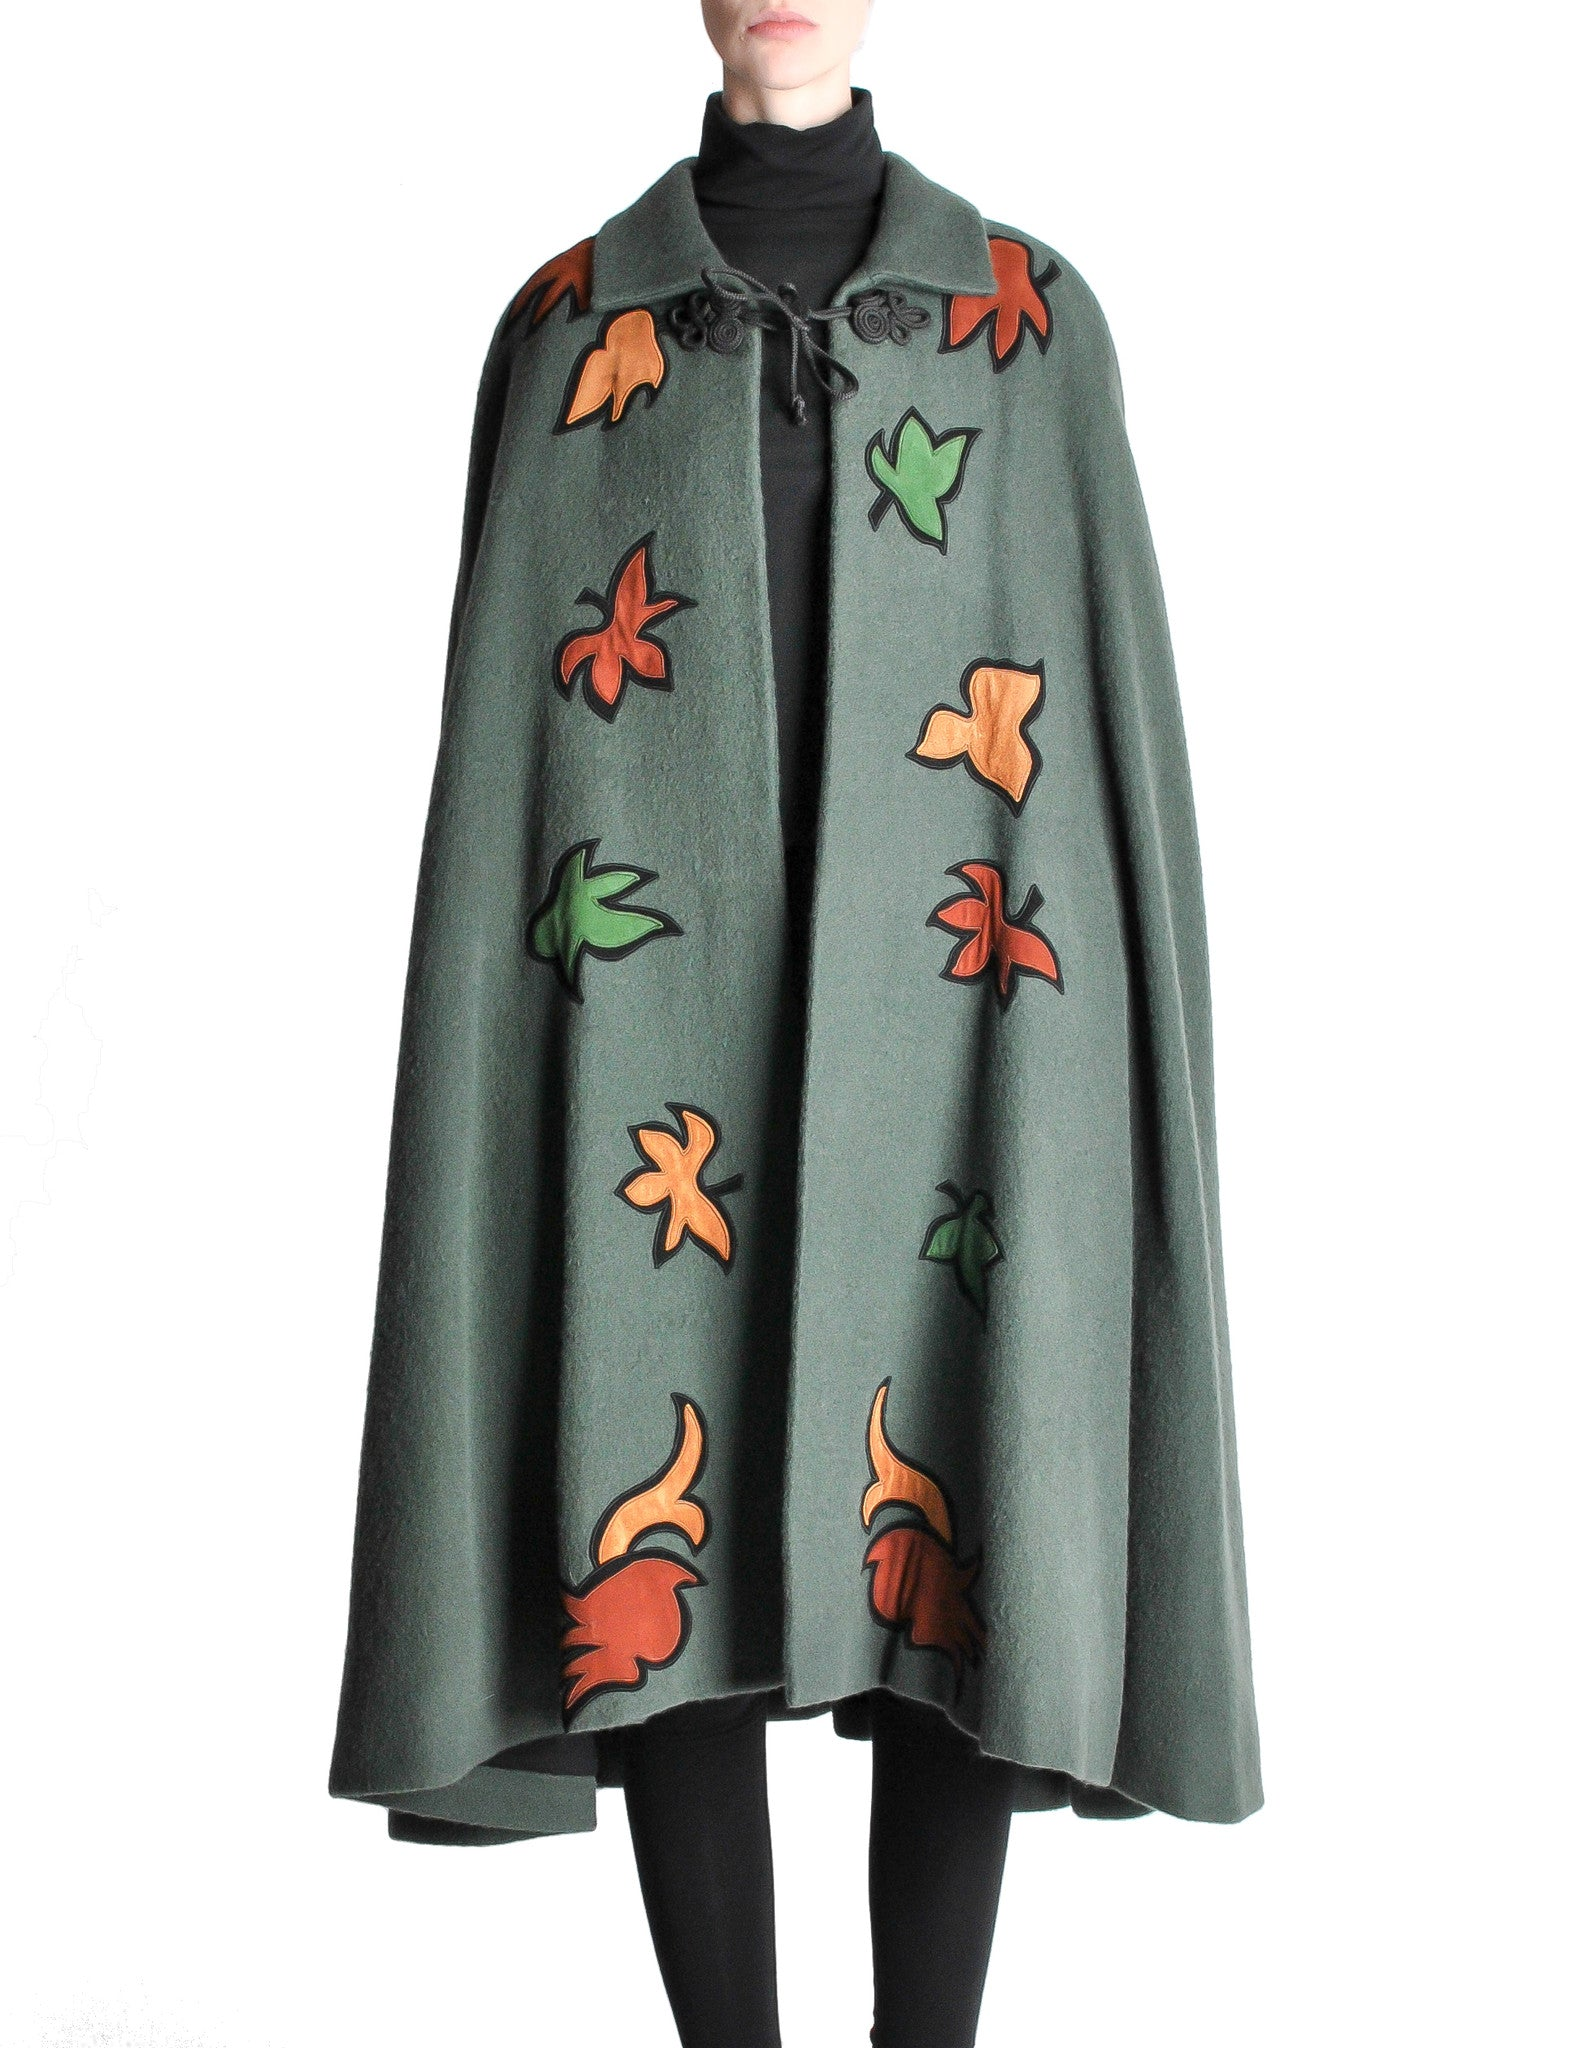 Saint Laurent Rive Gauche Vintage Green Falling Leaves Cape - Amarcord Vintage Fashion  - 1